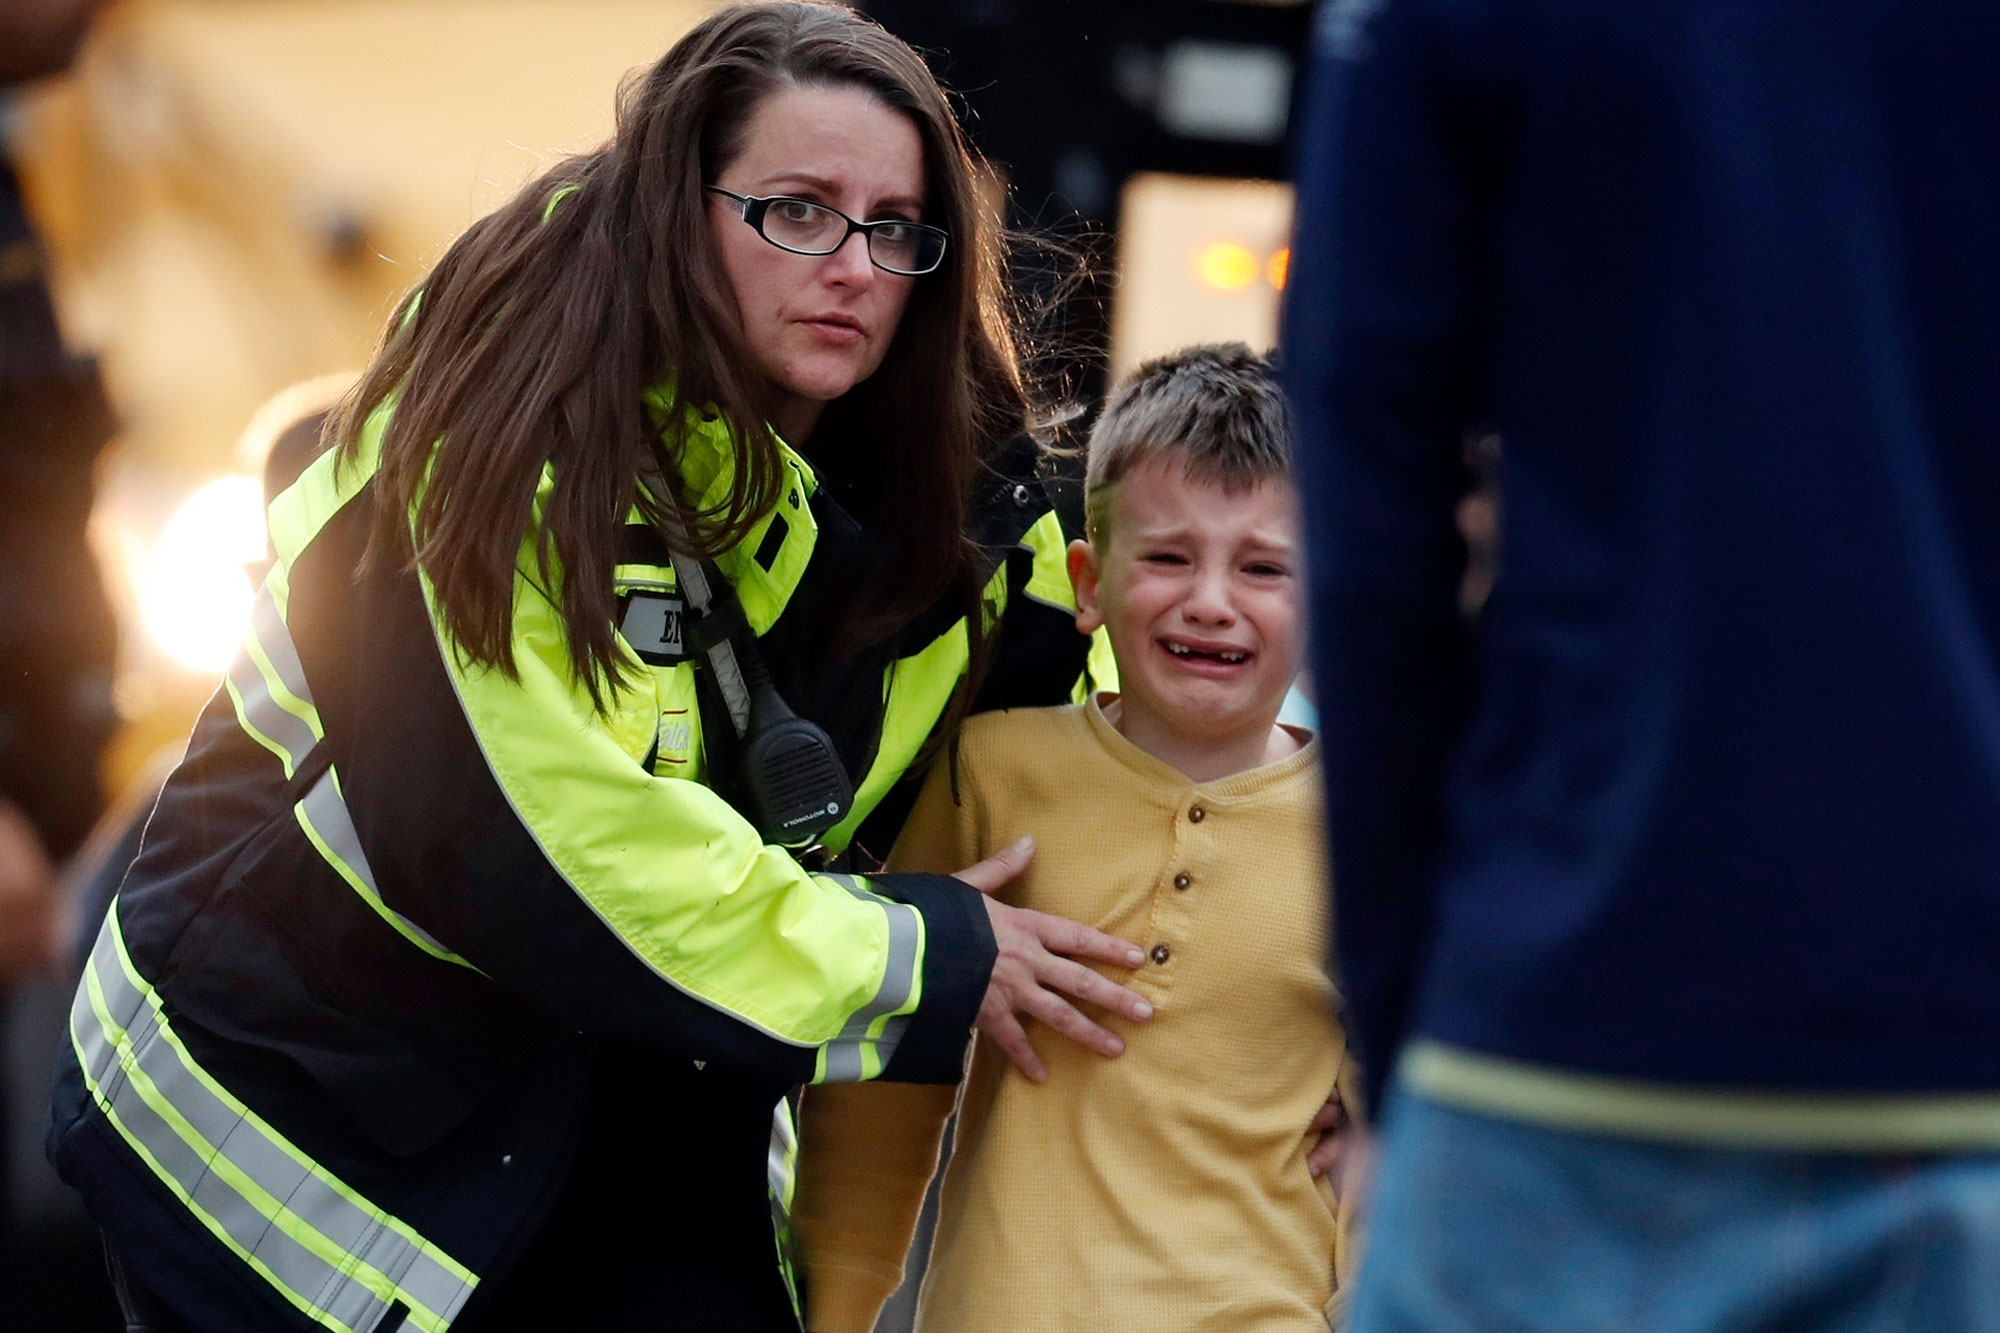 <p>Officials guide students off a bus and into a recreation center where they were reunited with their parents after a shooting at a suburban Denver middle school Tuesday, May 7, 2019, in Highlands Ranch, Colo.</p>